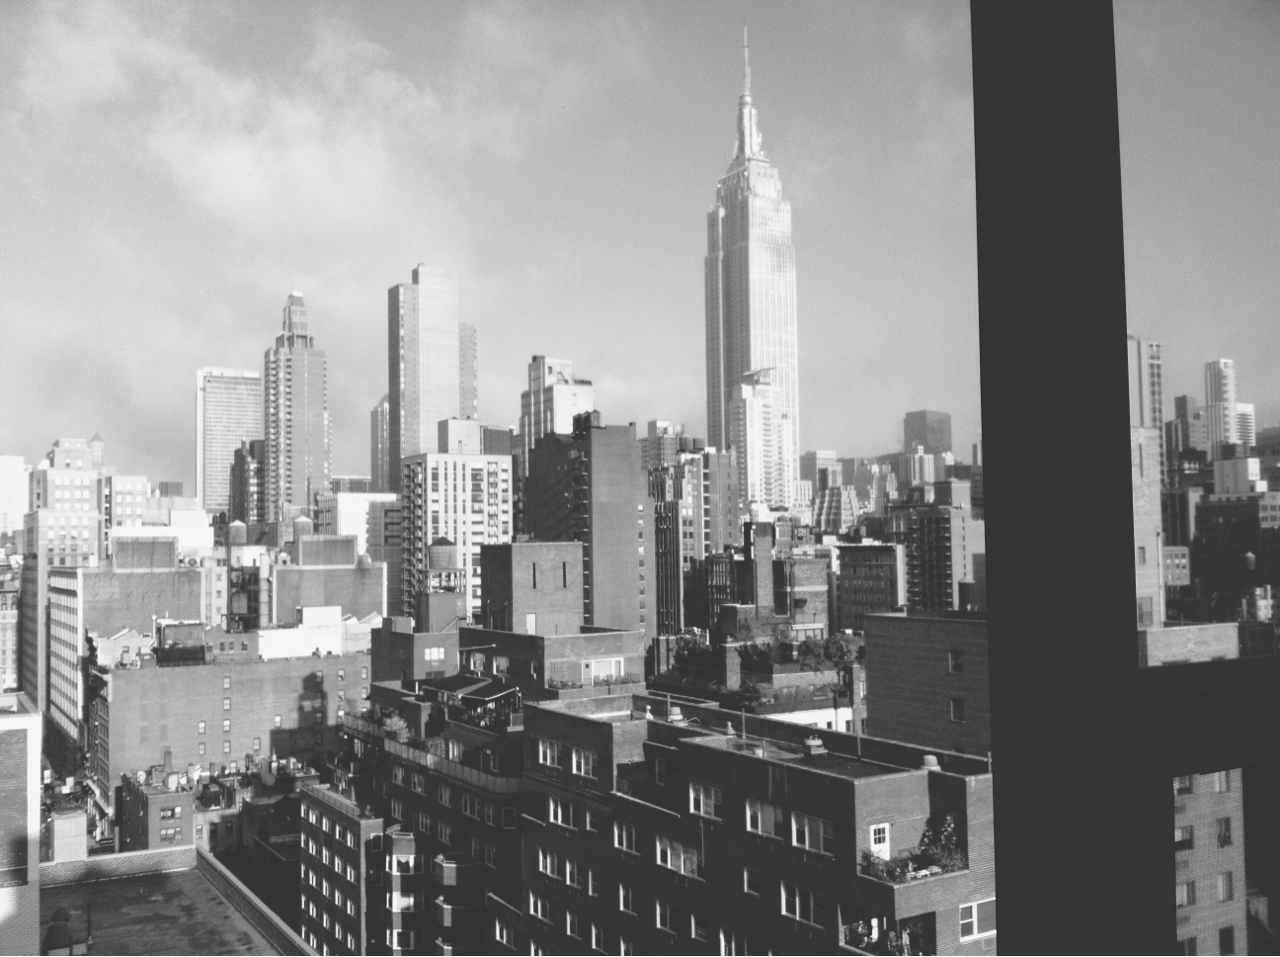 #nyc #skyline #empire #state #building #bw